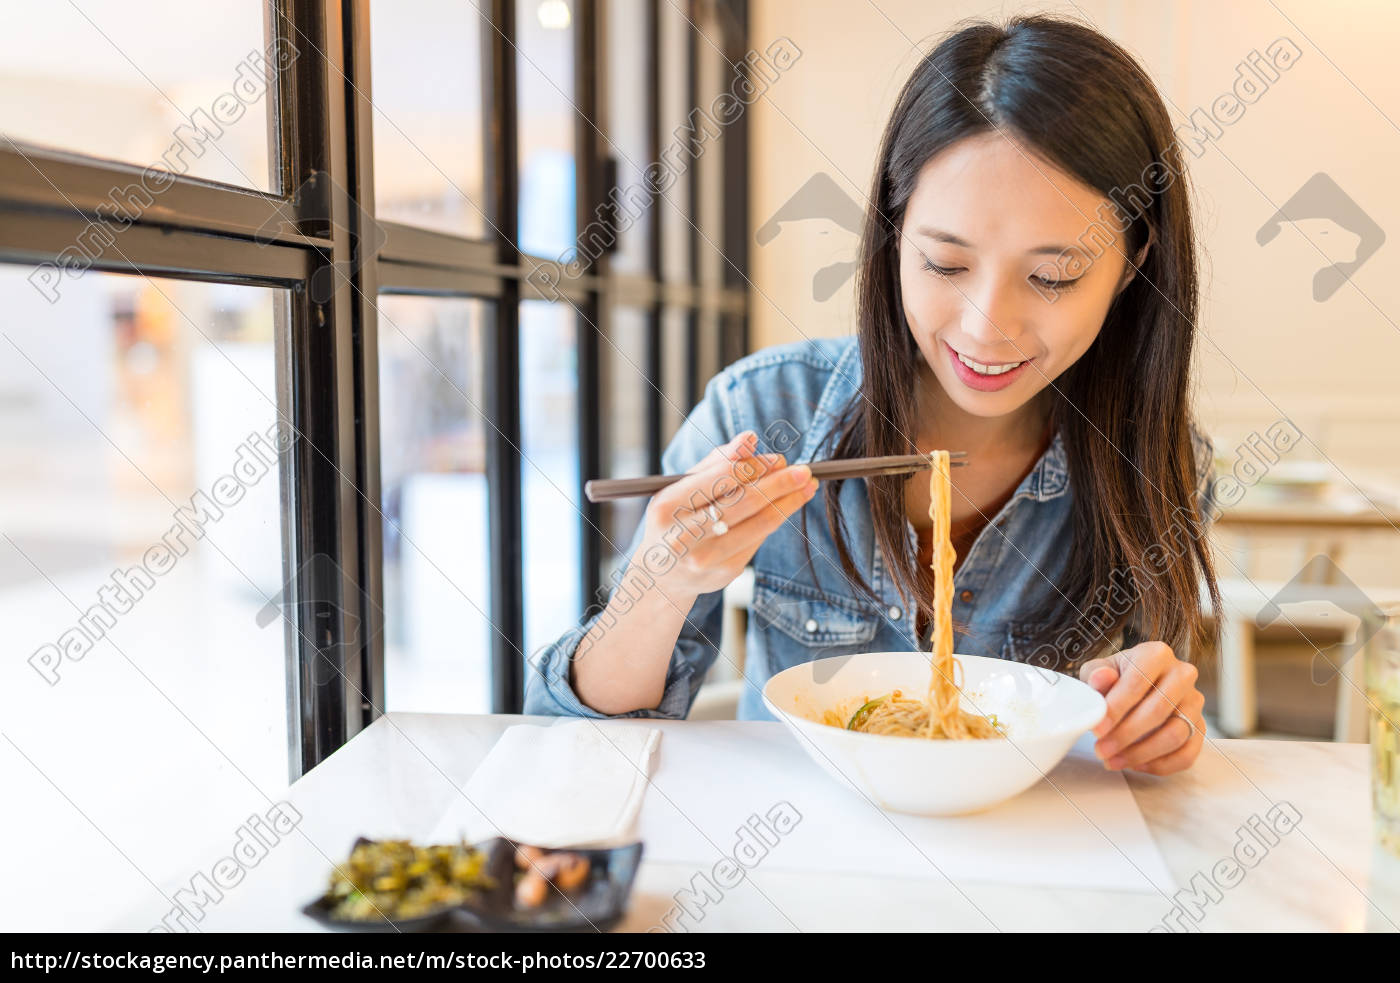 woman, eating, noodles, in, chinese, restaurant - 22700633